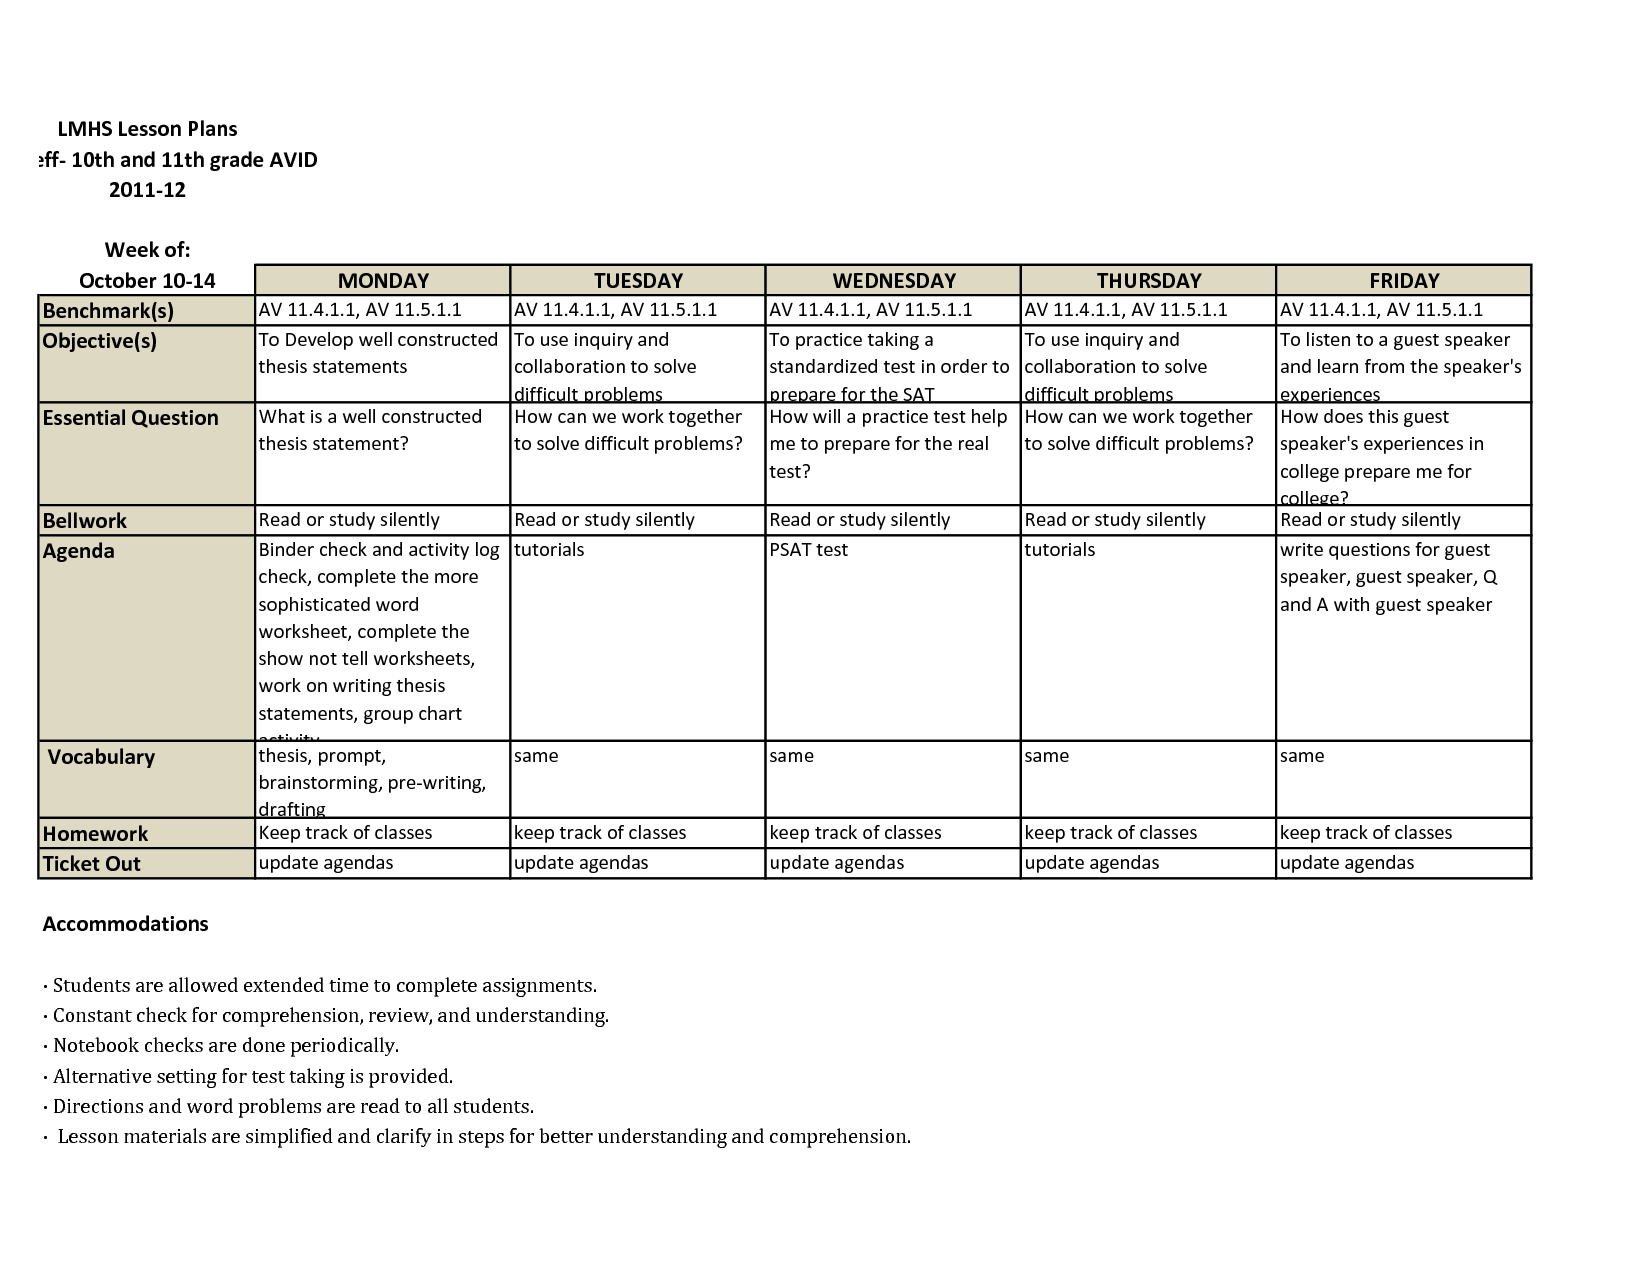 10th and 11th grade AVID lesson plans | Lesson plan ...